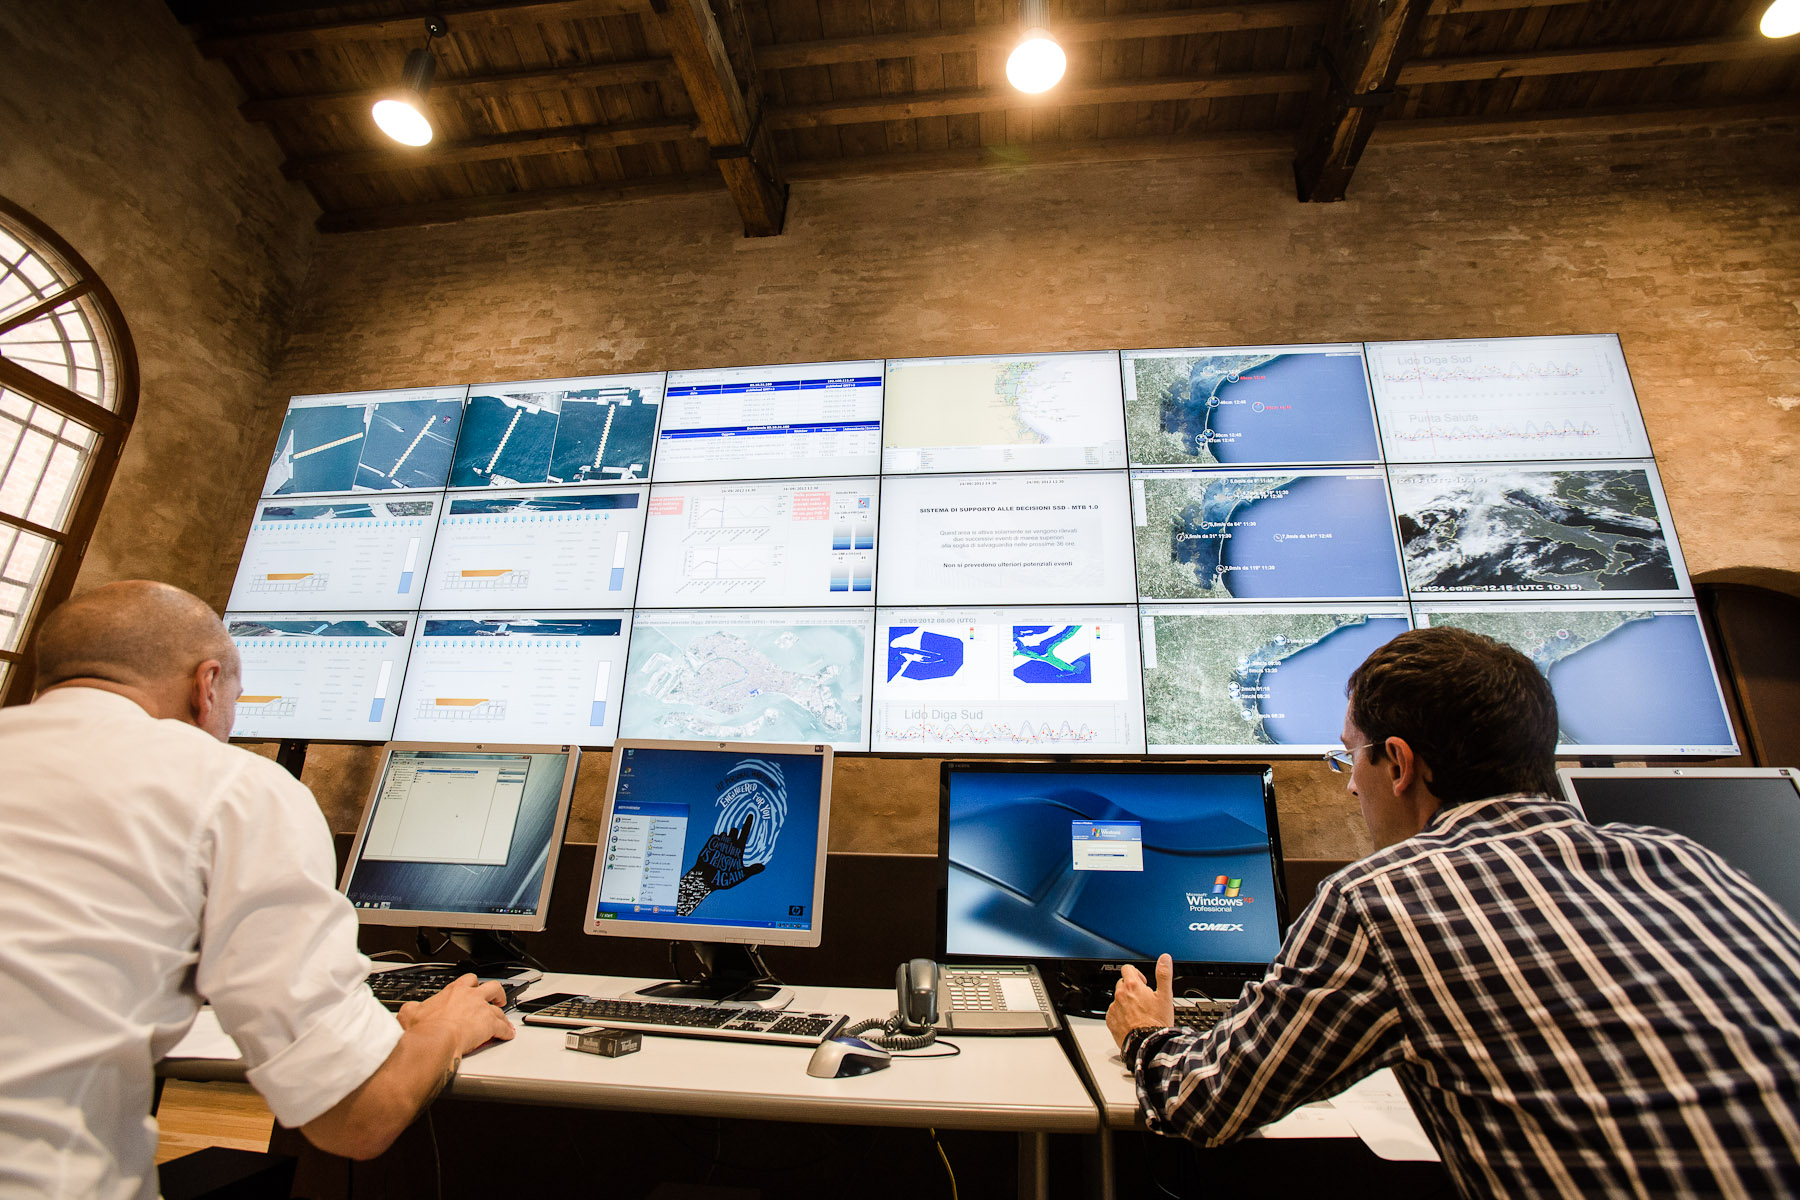 The MOSE project control room is where scientists will monitor weather, predict high tides well ahead, issue warnings and operate the gates. It is located in Venice Arsenal and allows scientists to monitor the entire lagoon from Jesolo to Chioggia.